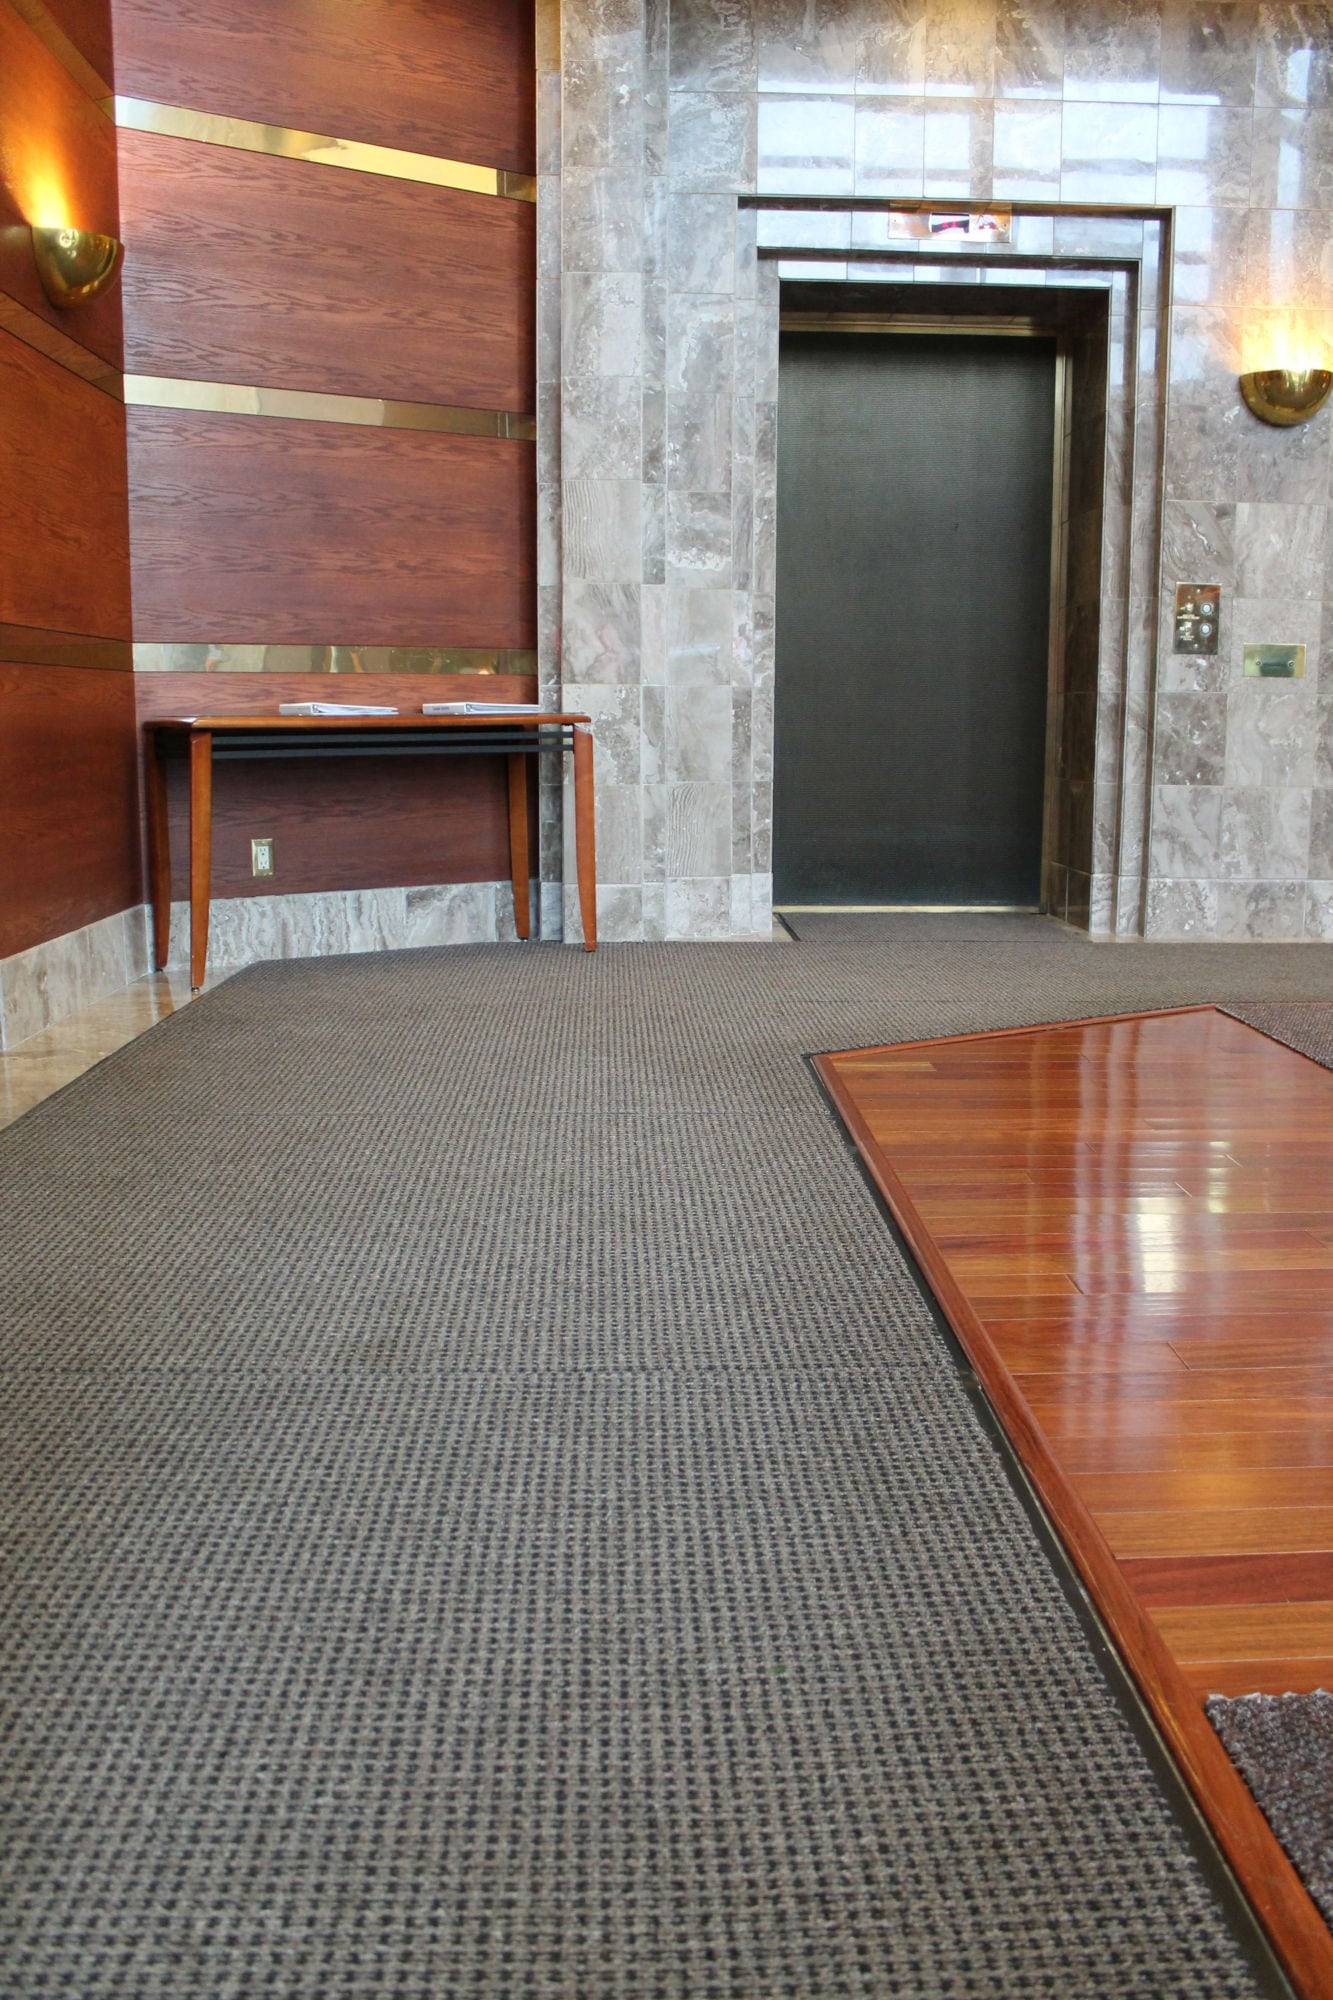 Ottawa Valley Hardwood Flooring Of Our Work Ottawa Ontario Parliament Cleaning Group Inside Interior View Of Entrance Matting at the Saint George Ottawa